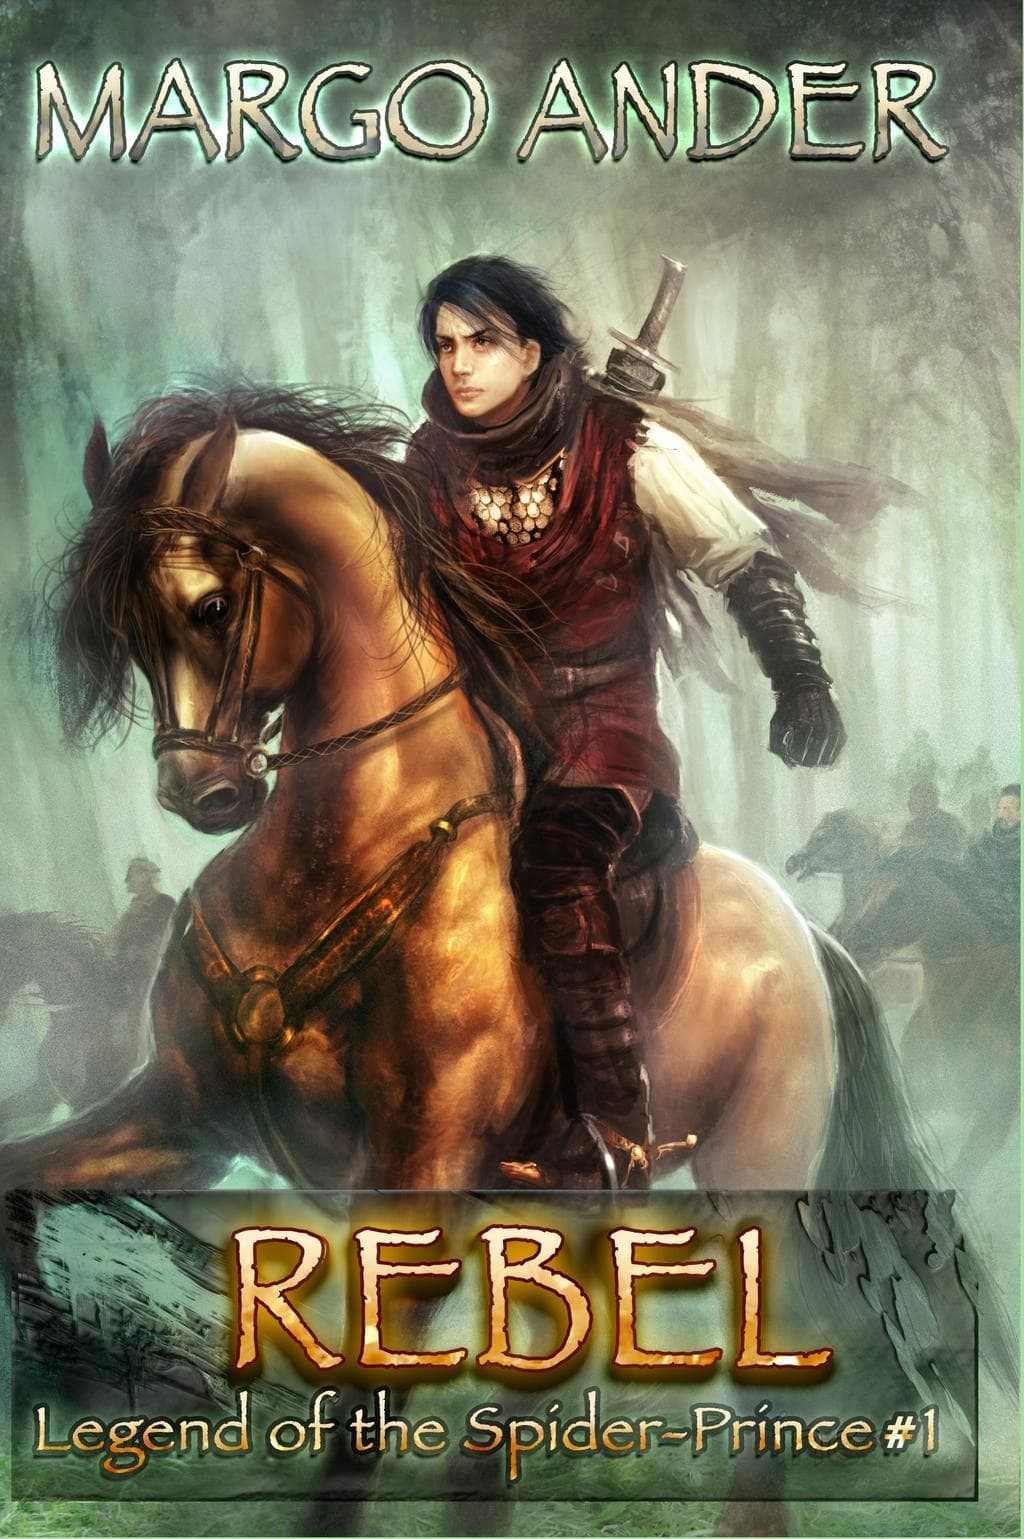 The Legend of the Spider-Prince by Margo Ander #booktour #bookreview #giveaway